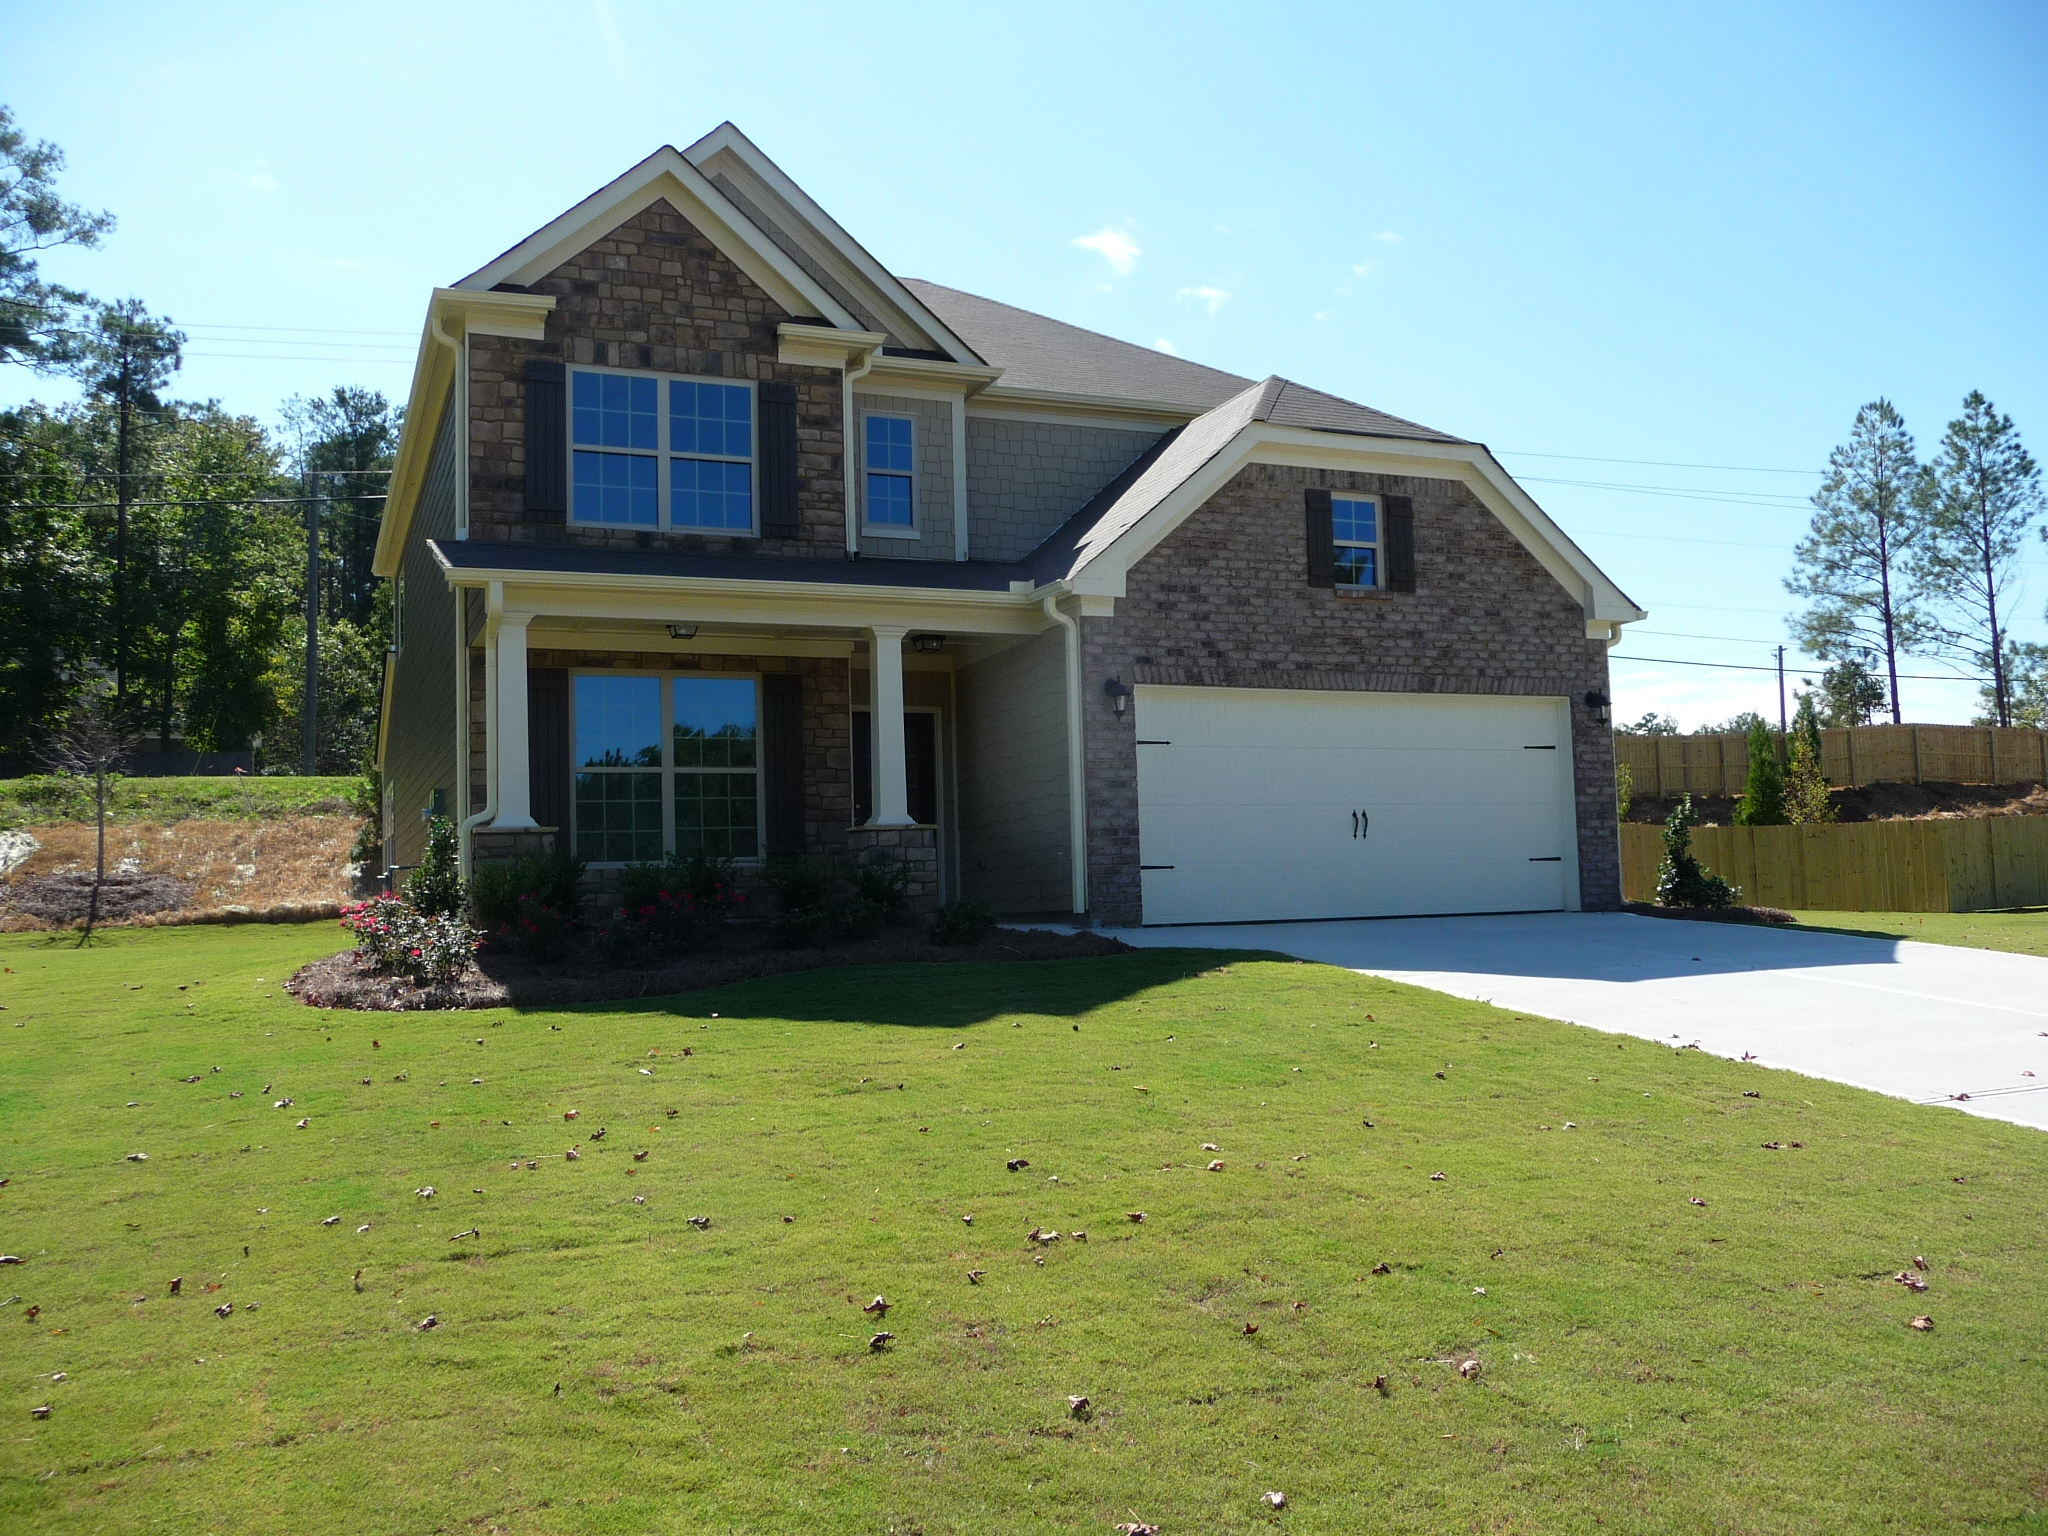 Homes for sale in Hiram